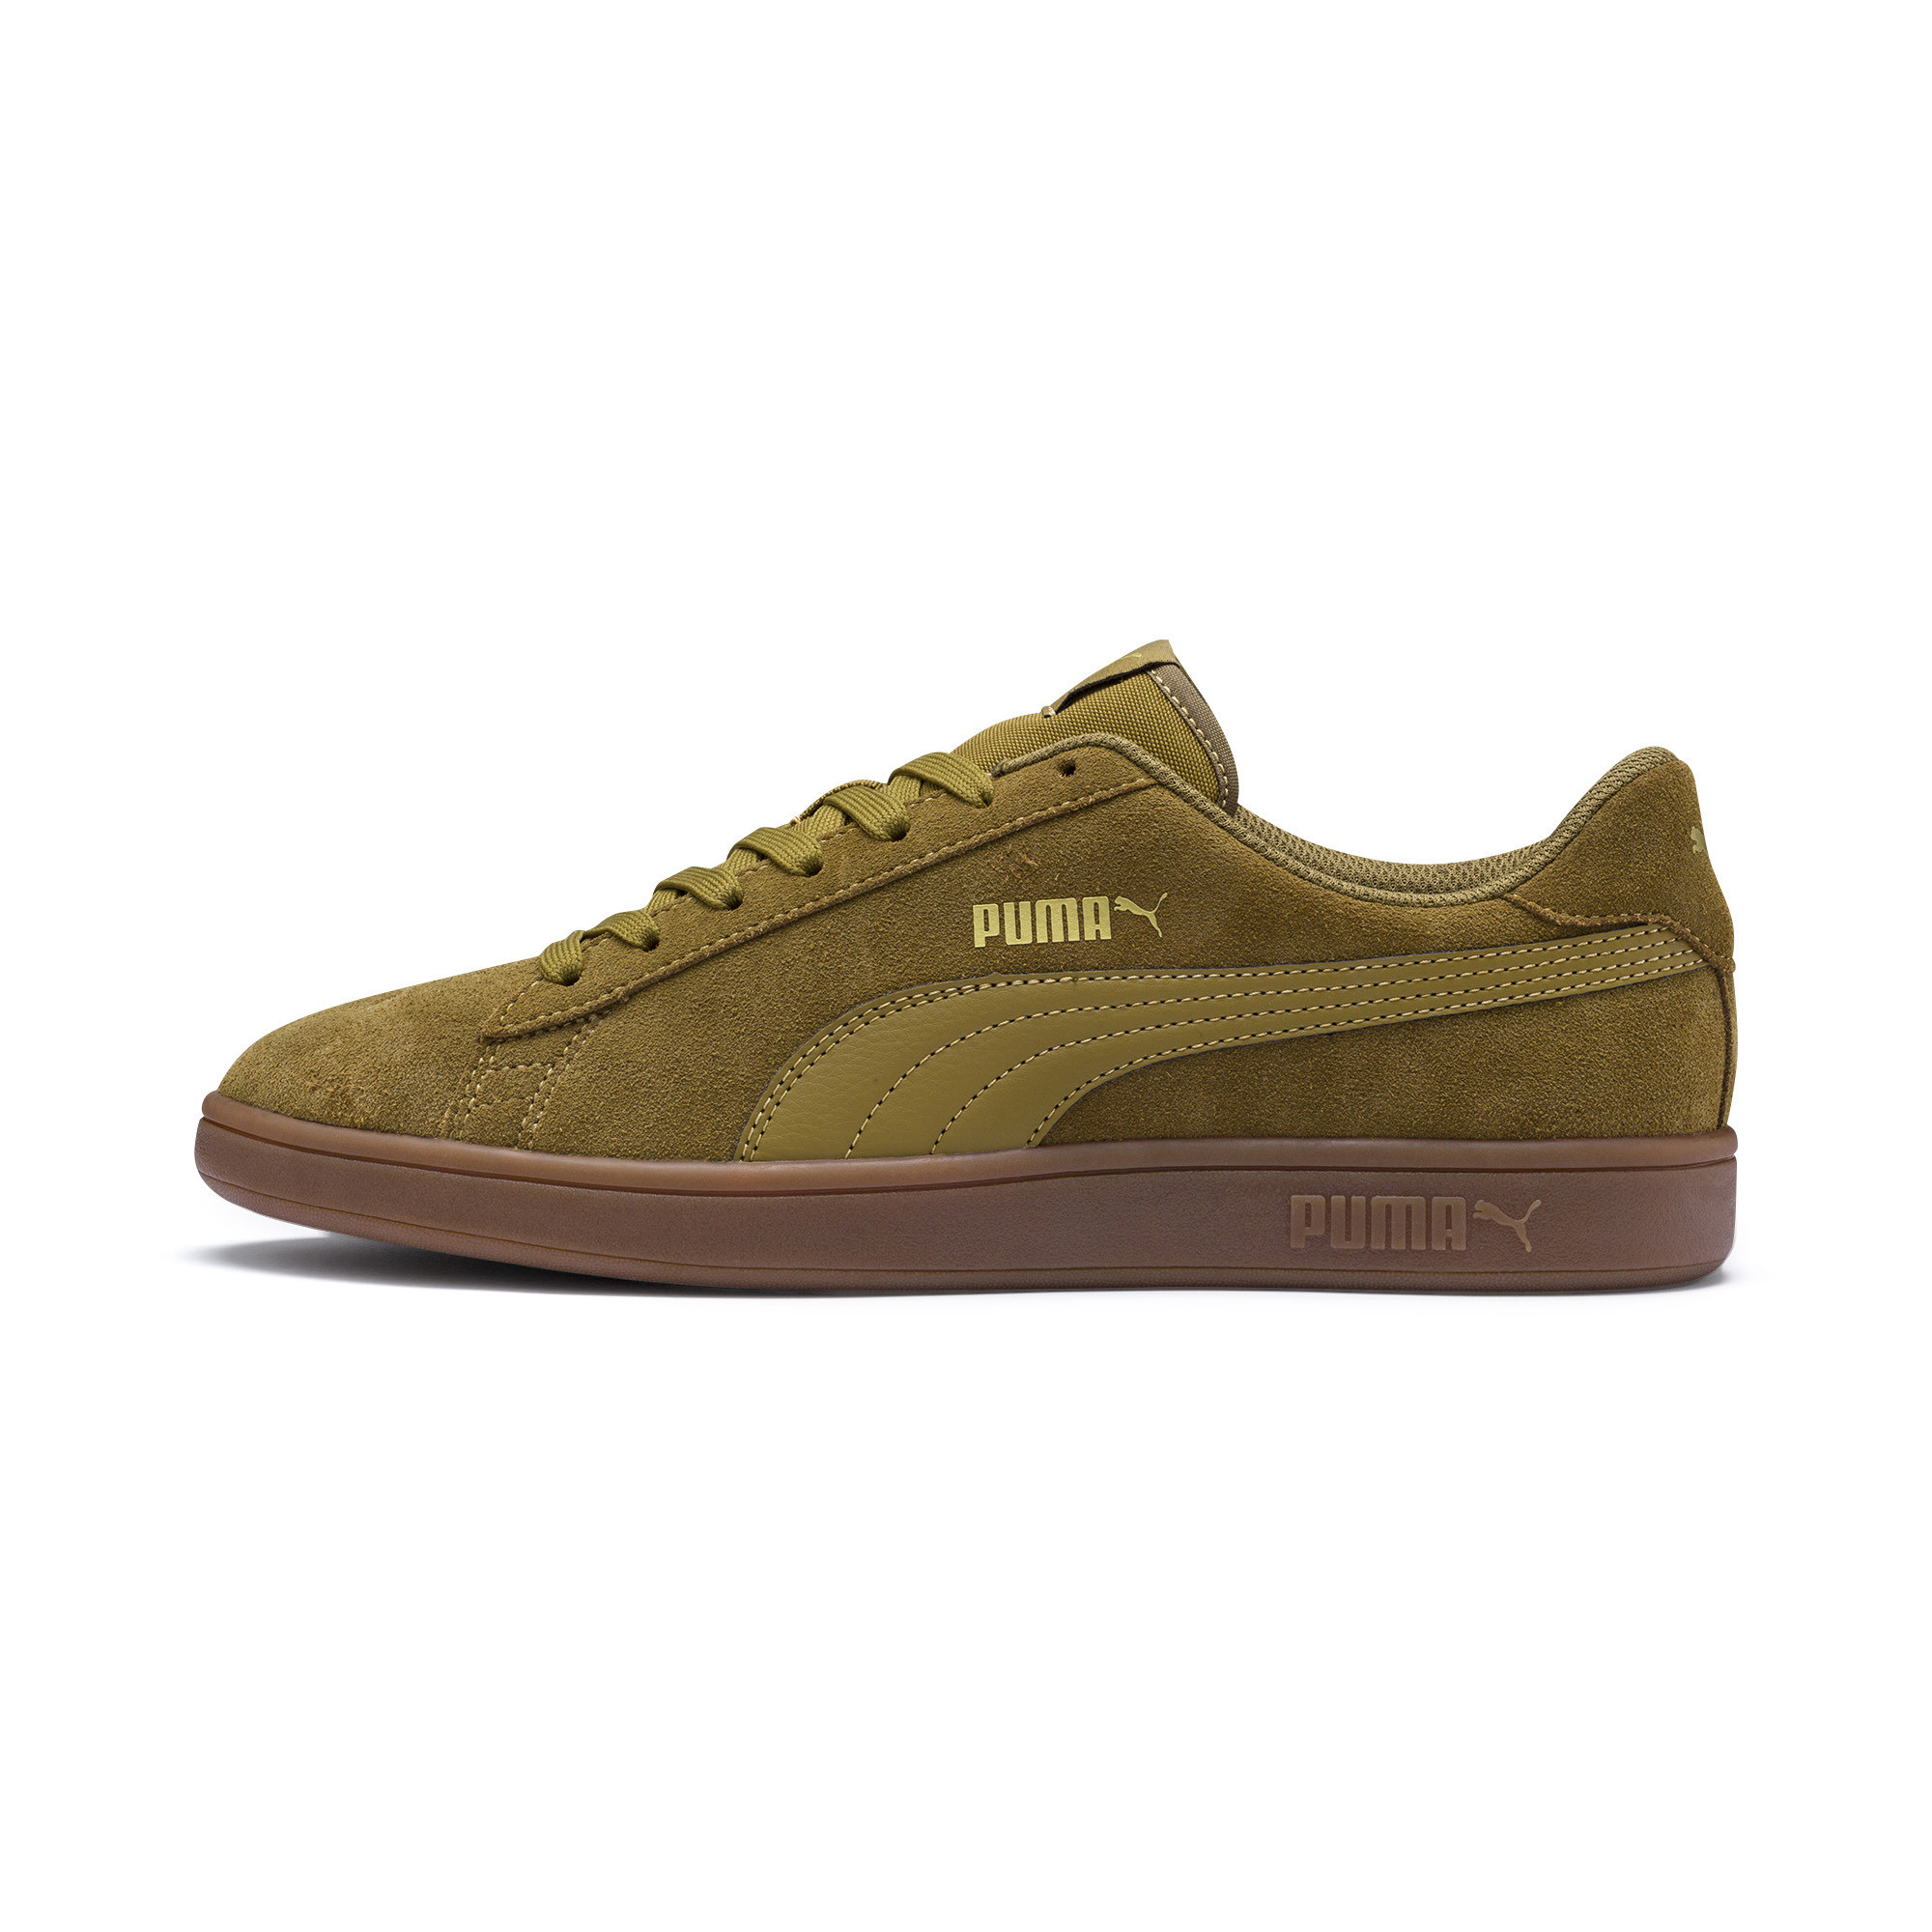 PUMA-PUMA-Smash-v2-Men-039-s-Sneakers-Men-Shoe-Basics thumbnail 54